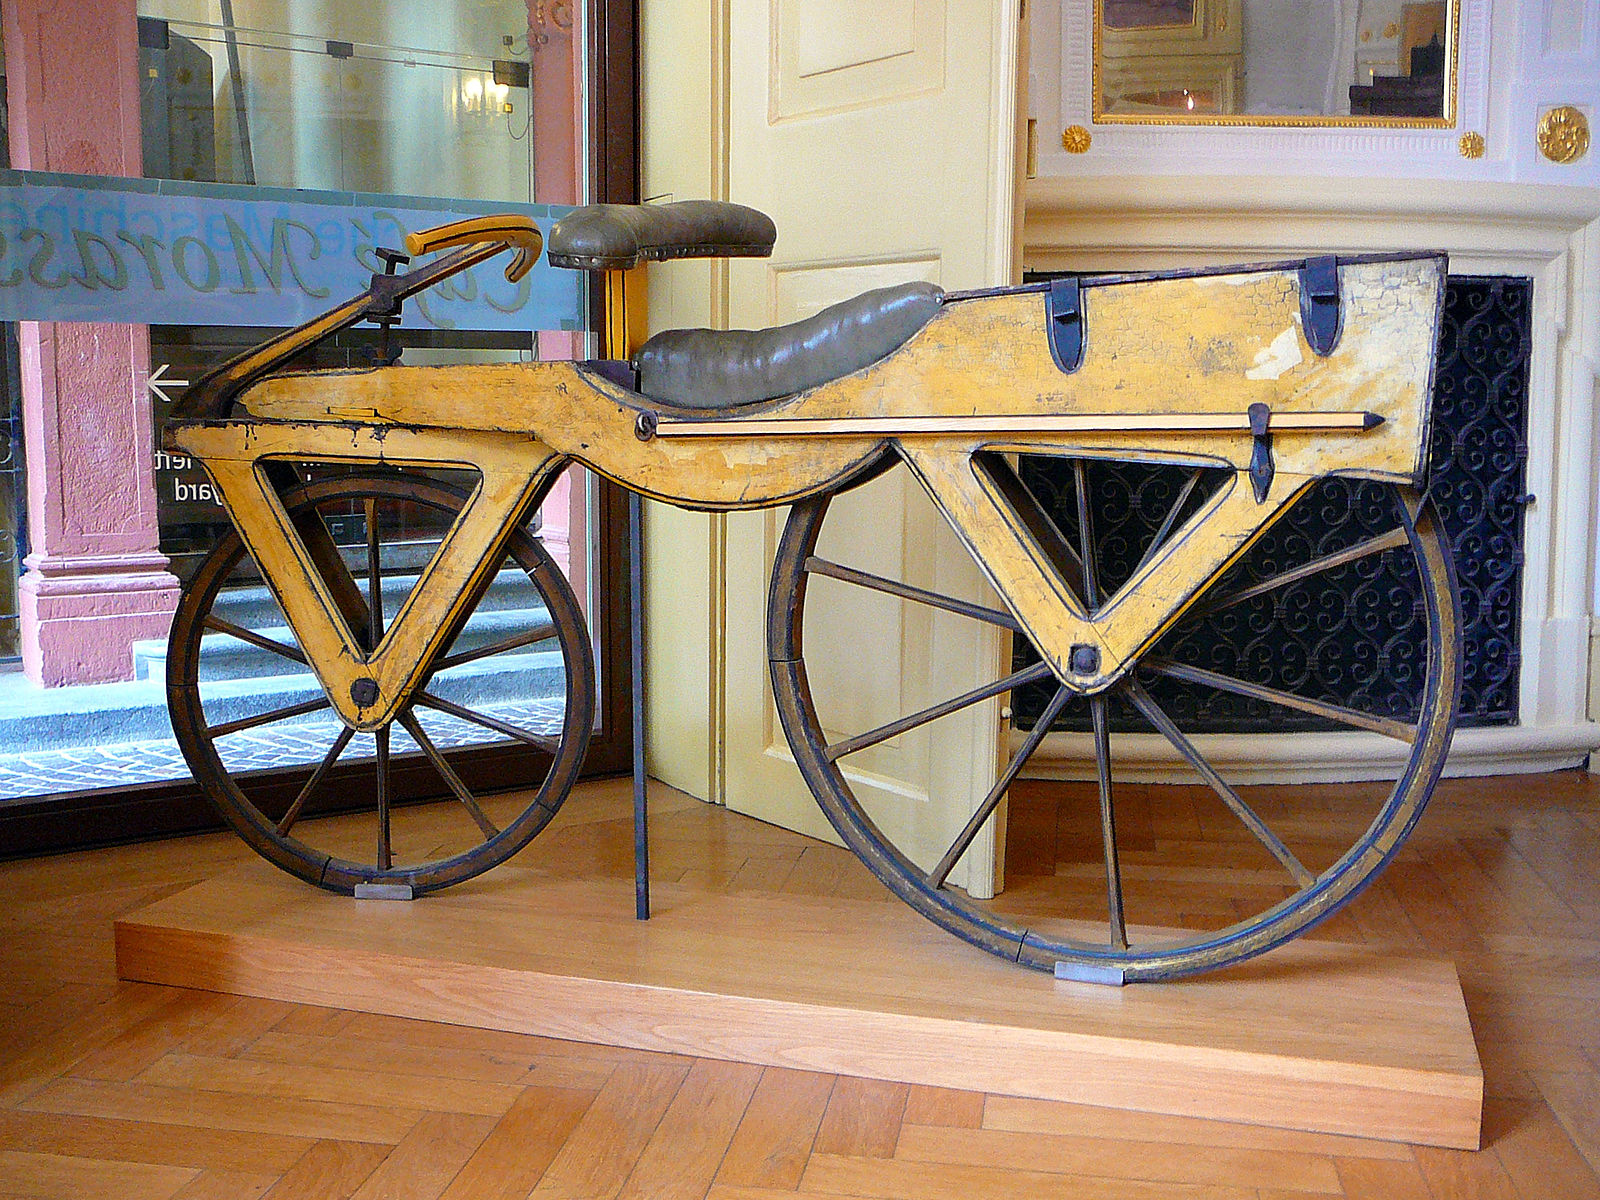 """Draisine, also called Laufmaschine (""""running machine""""), from around 1820. The Laufmaschine was invented by the German Baron Karl von Drais in Mannheim in 1817. Being the first means of transport to make use of the two-wheeler principle, the Laufmaschine is regarded as the archetype of the bicycle. The above Draisine was built with cherry tree wood and softwood. It is displayed at the Kurpfälzisches Museum in Heidelberg, Germany (Inv.-No. GH 98).  (Text and image from WikiMedia and licensed for reuse.)"""